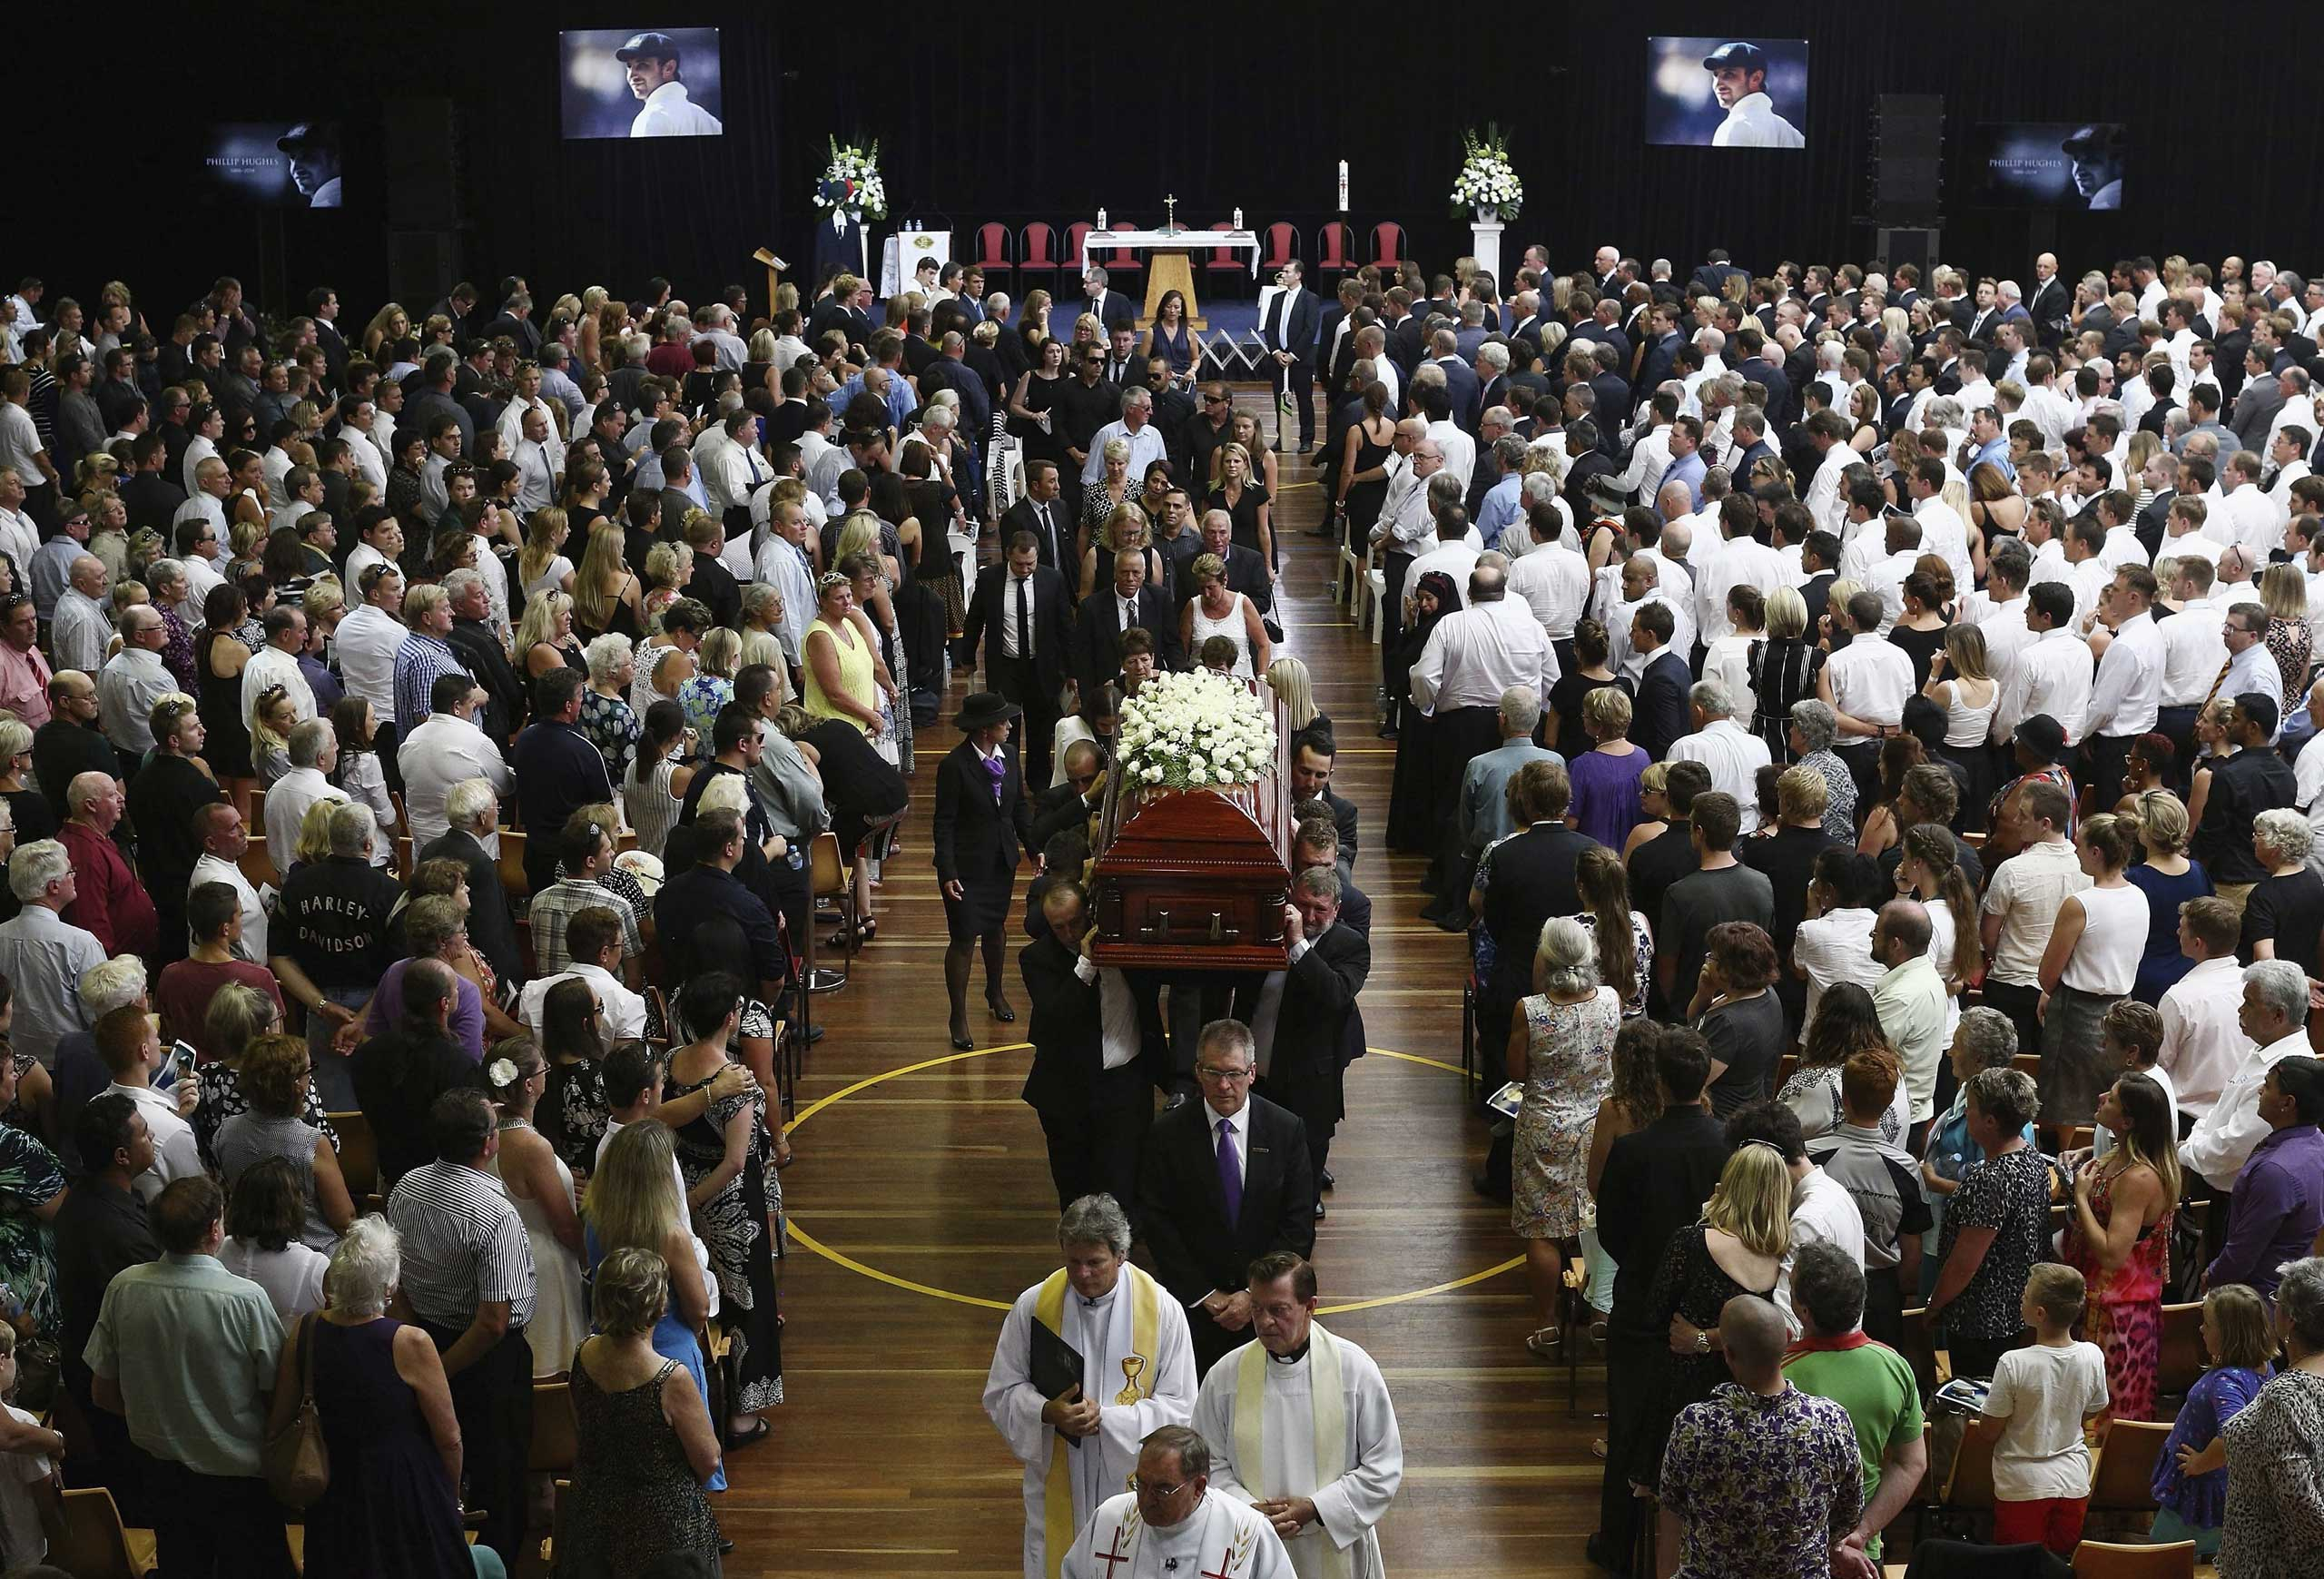 Dec. 3, 2014. The coffin of Australian cricketer Phillip Hughes is carried down the aisle during his Funeral Service in Macksville, Australia. Hughes, 25 died on after he was hit by a cricket ball while batting for South Australia during a Sheffield Shield game against New South Wales at the Sydney Cricket Ground.